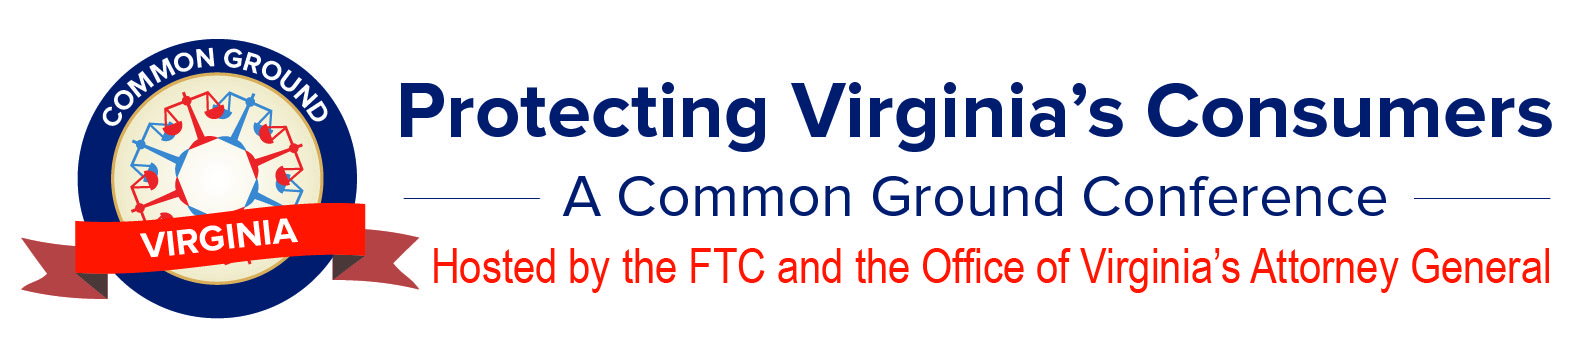 Protecting Virginia's Consumers: A Common Ground Conference